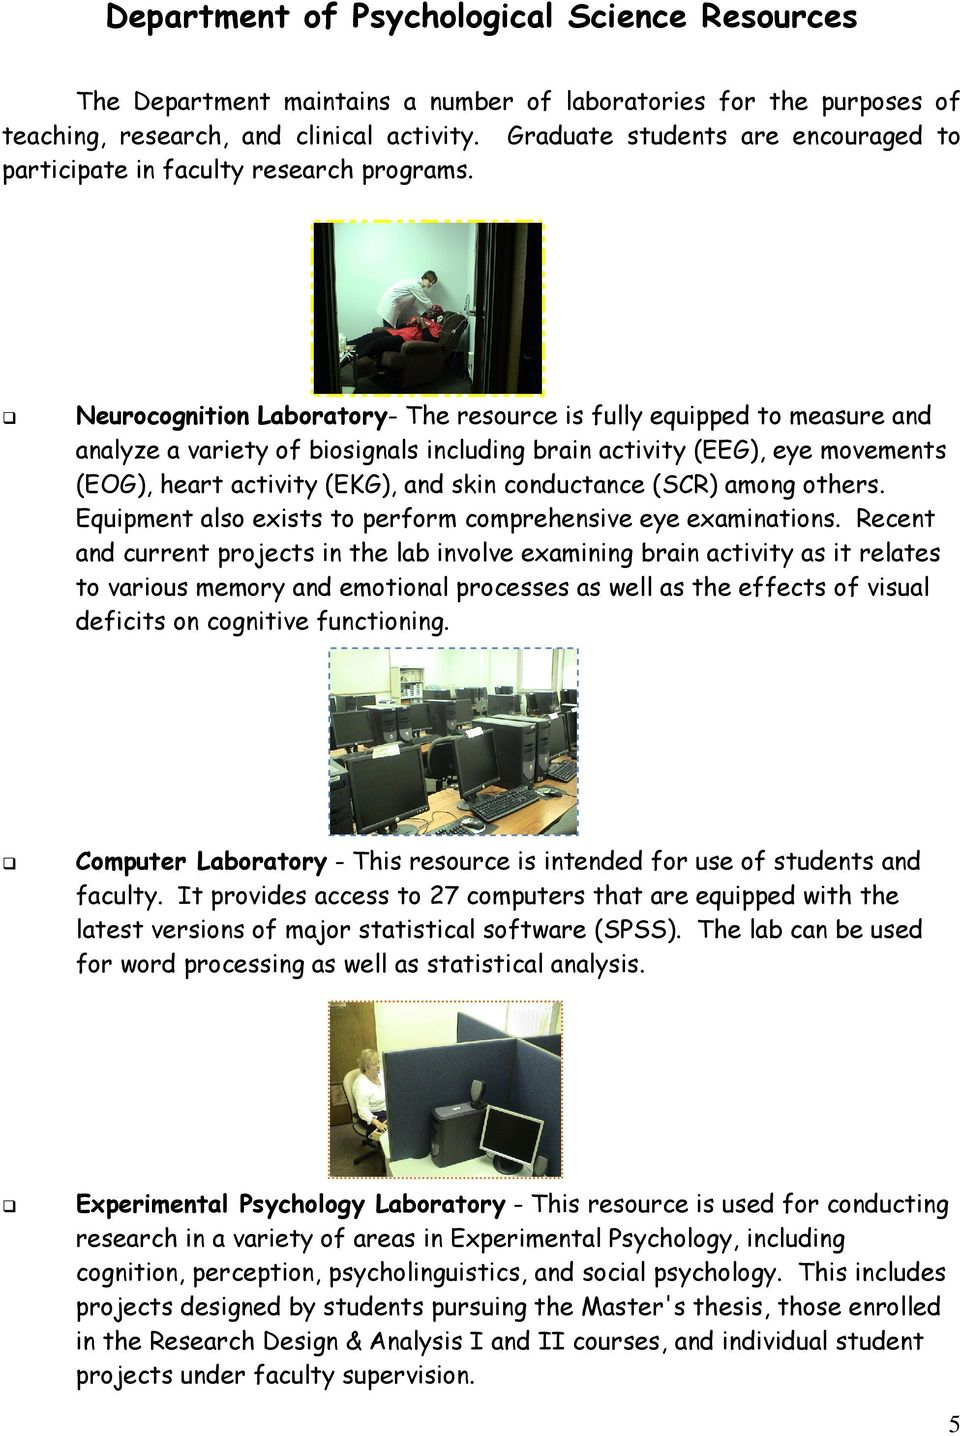 Neurocognition Laboratory- The resource is fully equipped to measure and analyze a variety of biosignals including brain activity (EEG), eye movements (EOG), heart activity (EKG), and skin